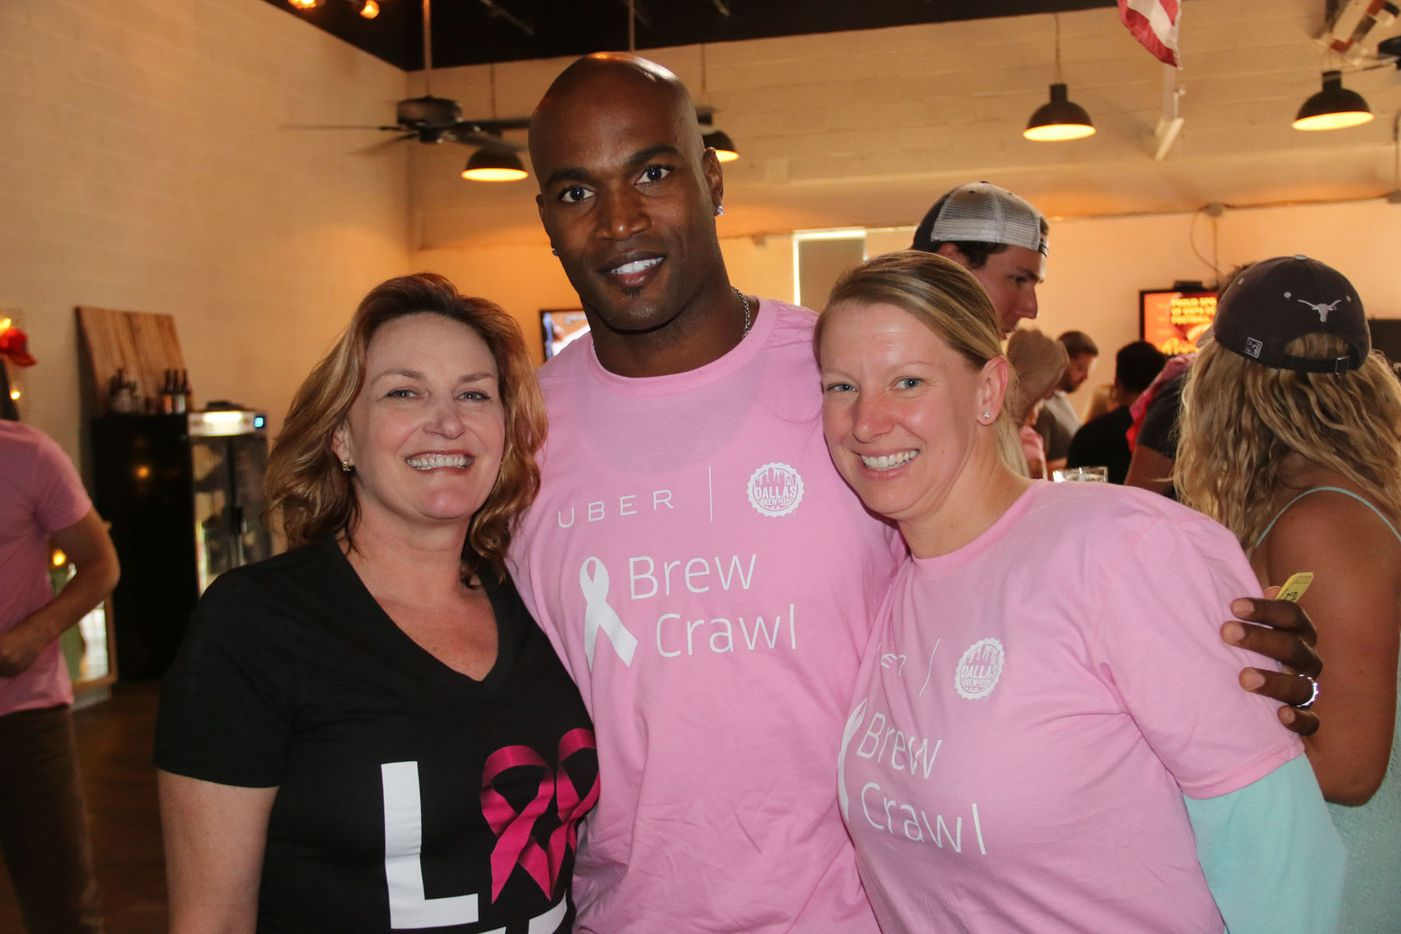 Susan McClure, former Dallas Cowboys player Bradie James and Kim Vowell  at Noble Rey Brewing Co. during the inaugural Brew Crawl for Breast Cancer on Saturday in Dallas. The event benefited James' Foundation 56 breast cancer nonprofit.